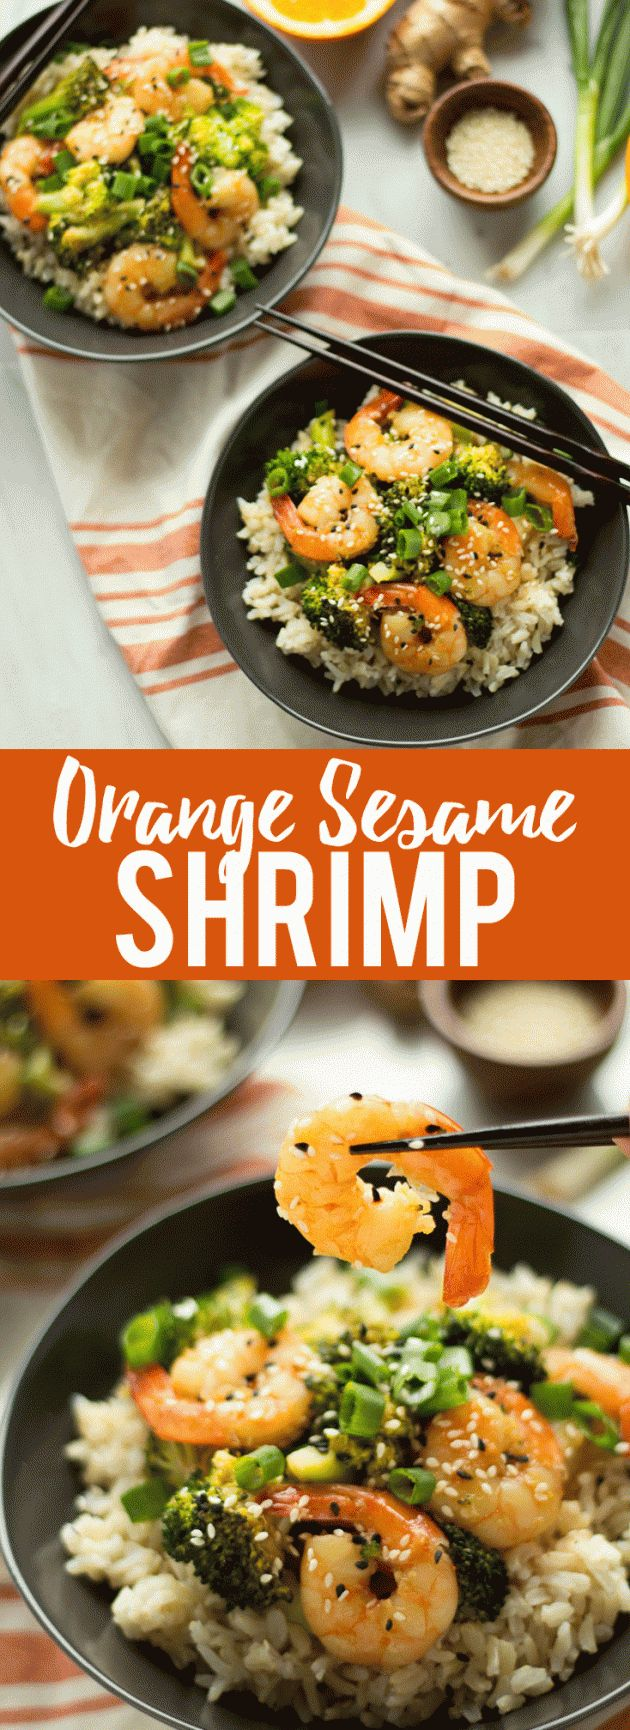 This healthier Orange Sesame Shrimp is a quick and flavorful weeknight dinner!